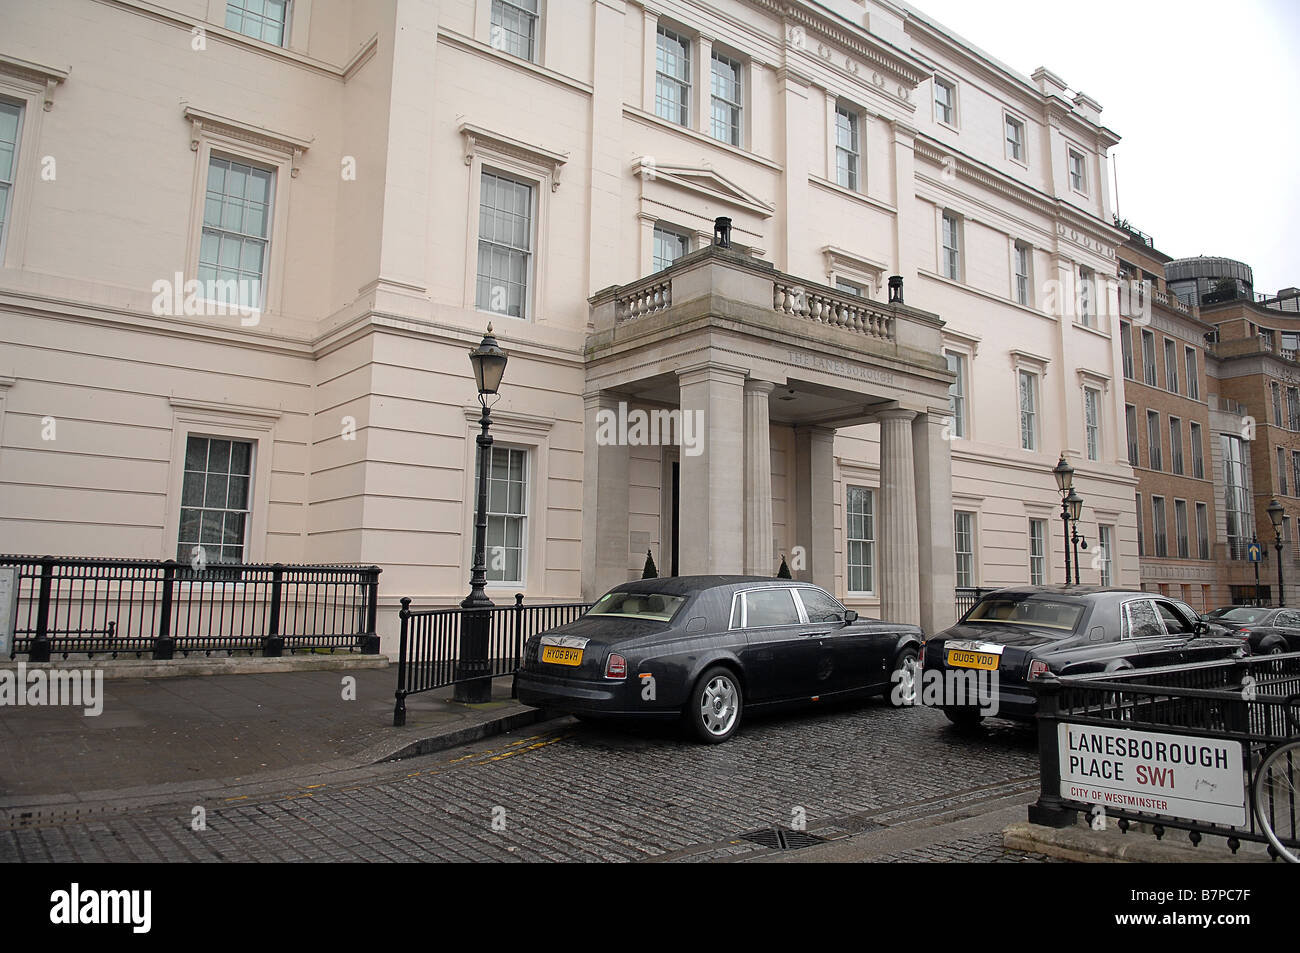 Lanesborough Hotel - London SW1 with two Rolls Royce Phantoms parked outside the main entrance - Stock Image